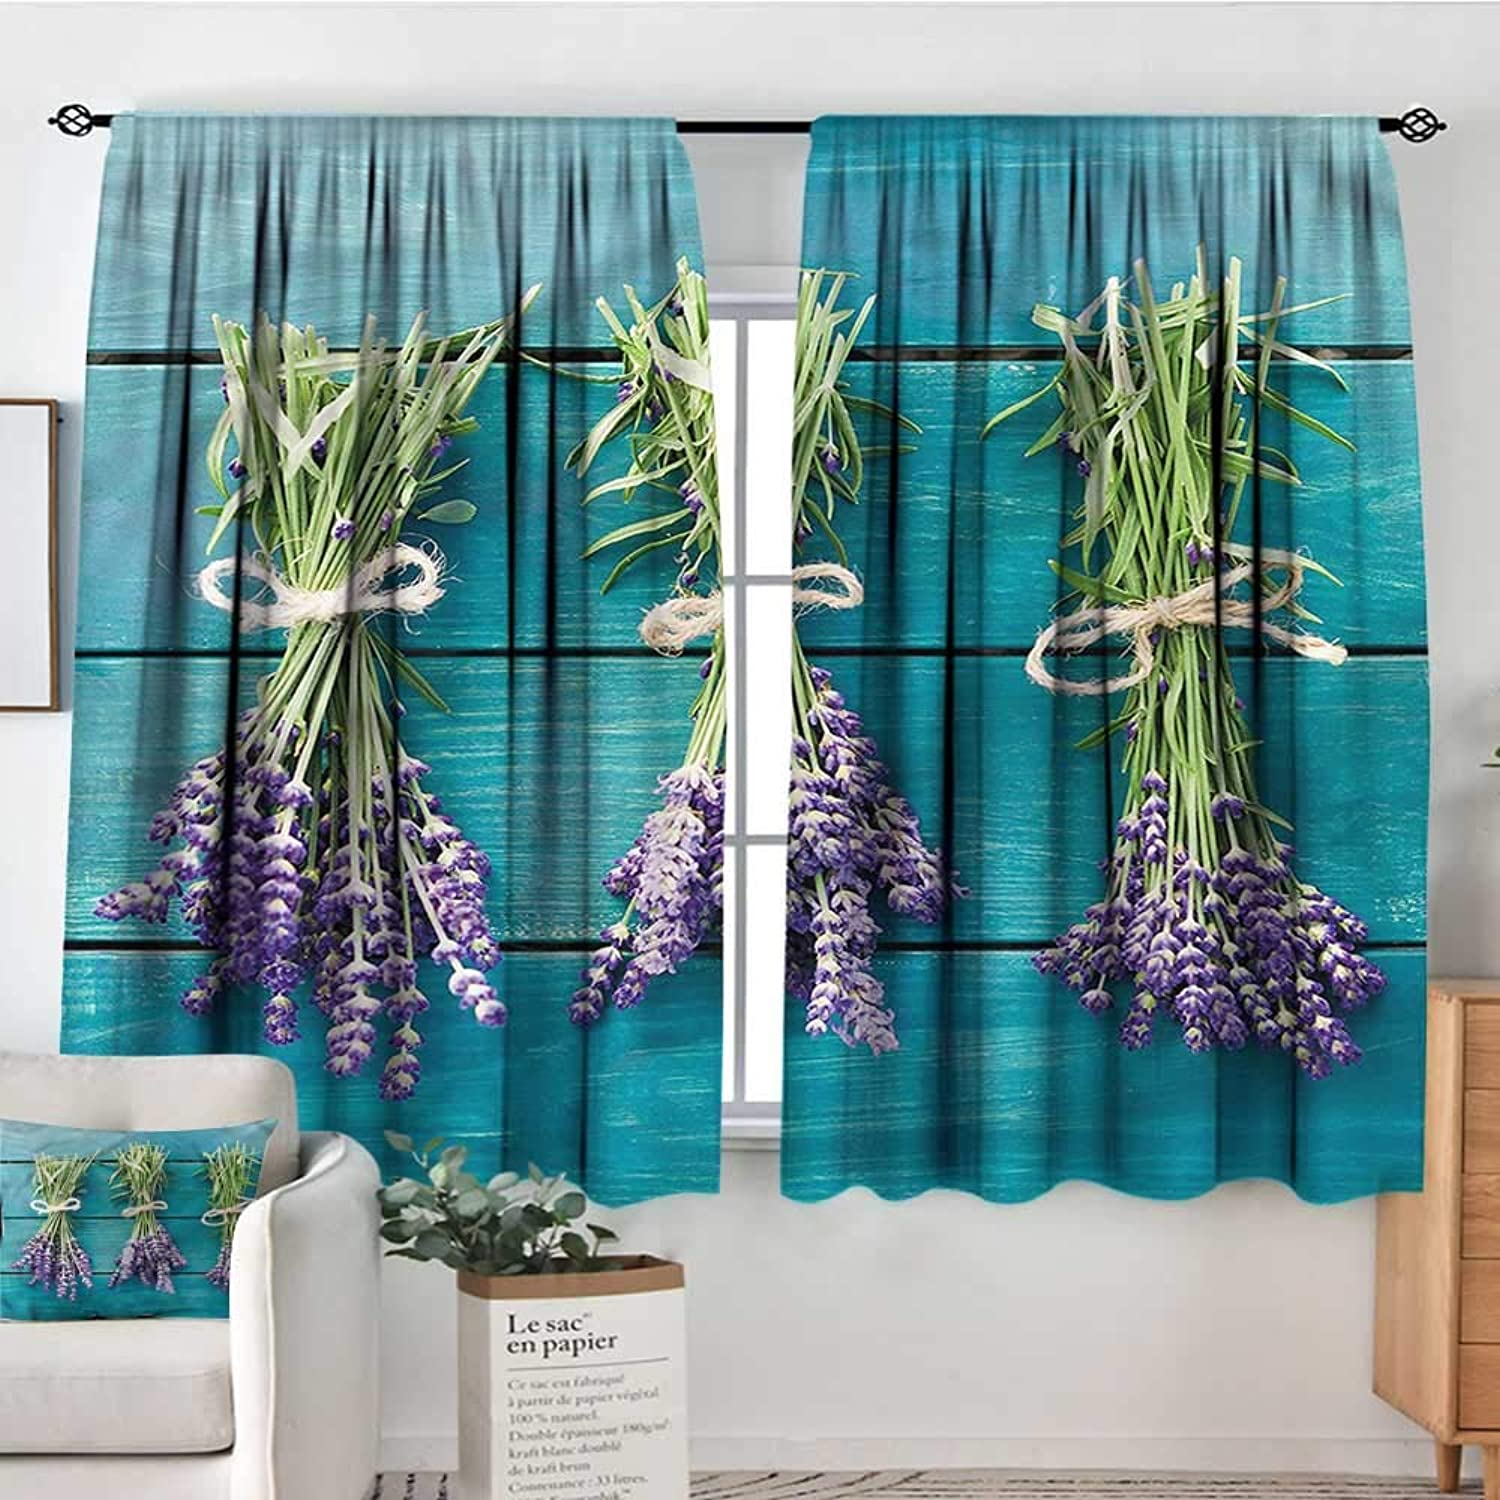 Sanring Lavender,Indo Panes Drapes bluee Wooden Planks Rustic 52 x63  Kids Backout Curtains for Bedroom